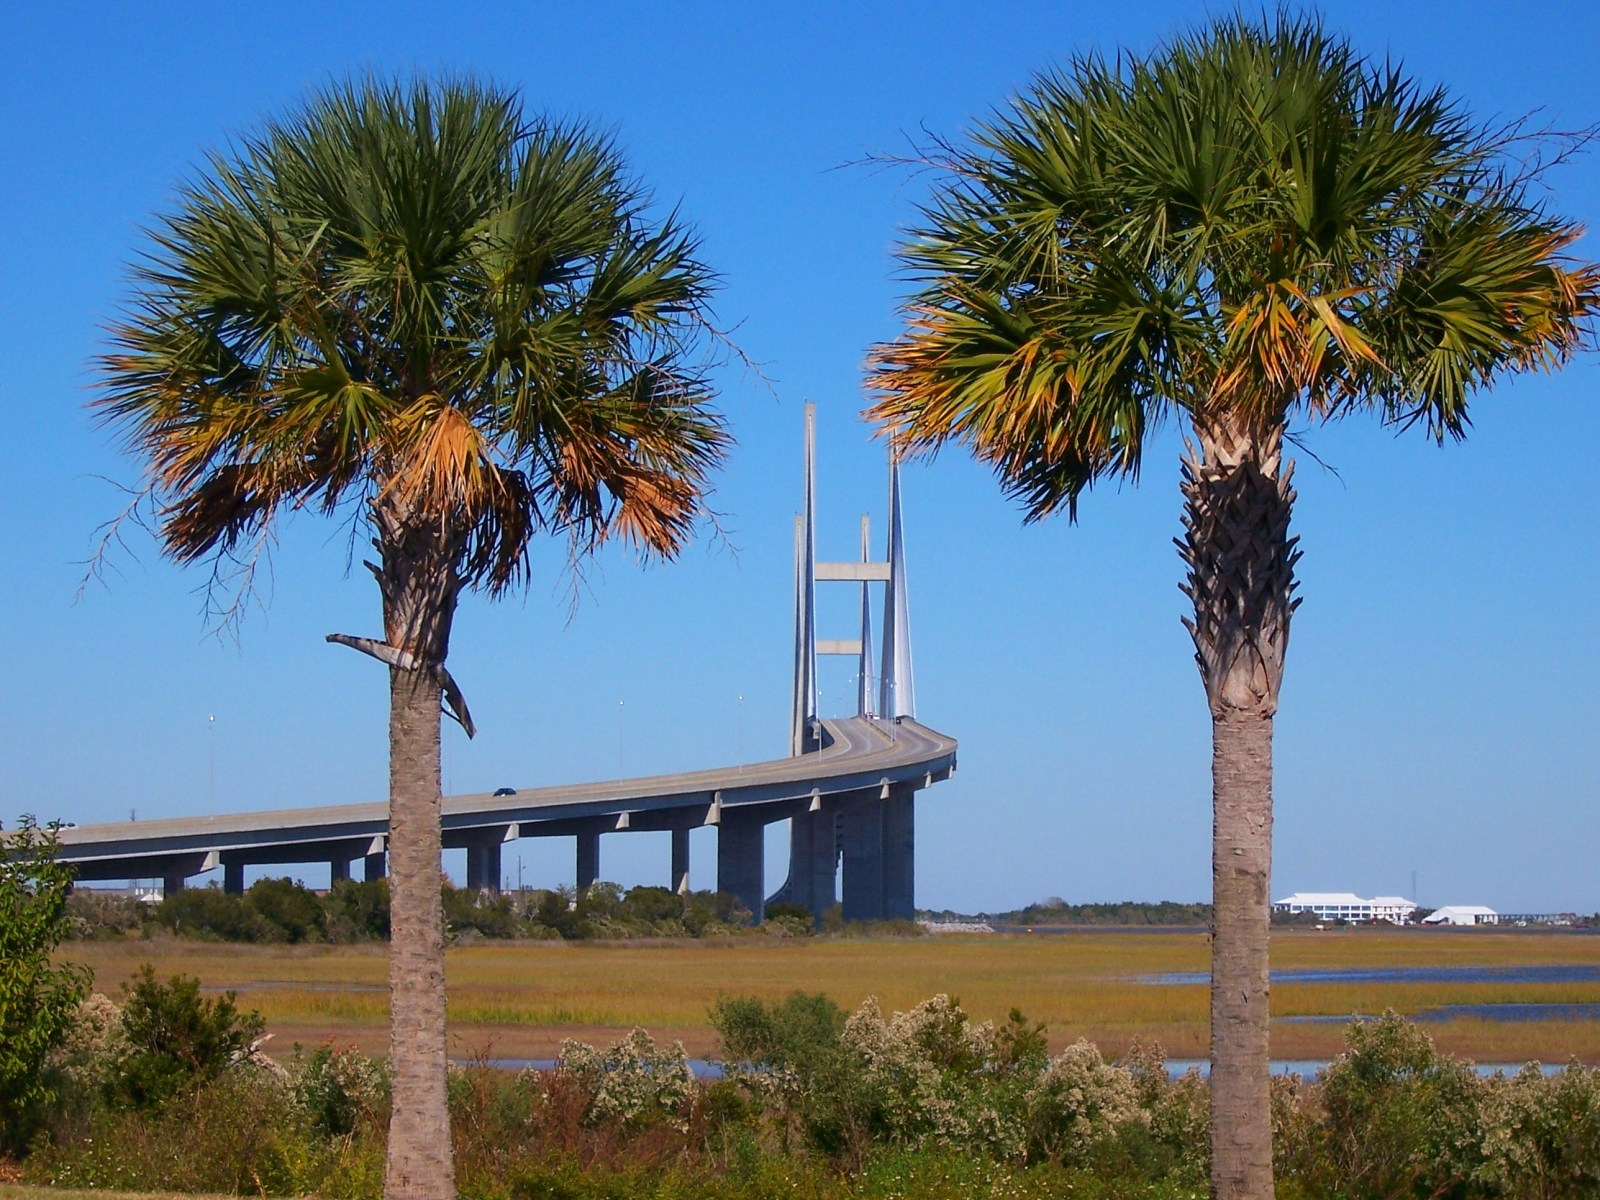 The bridge, Bridge, Bspo06, Concrete, Palms, HQ Photo